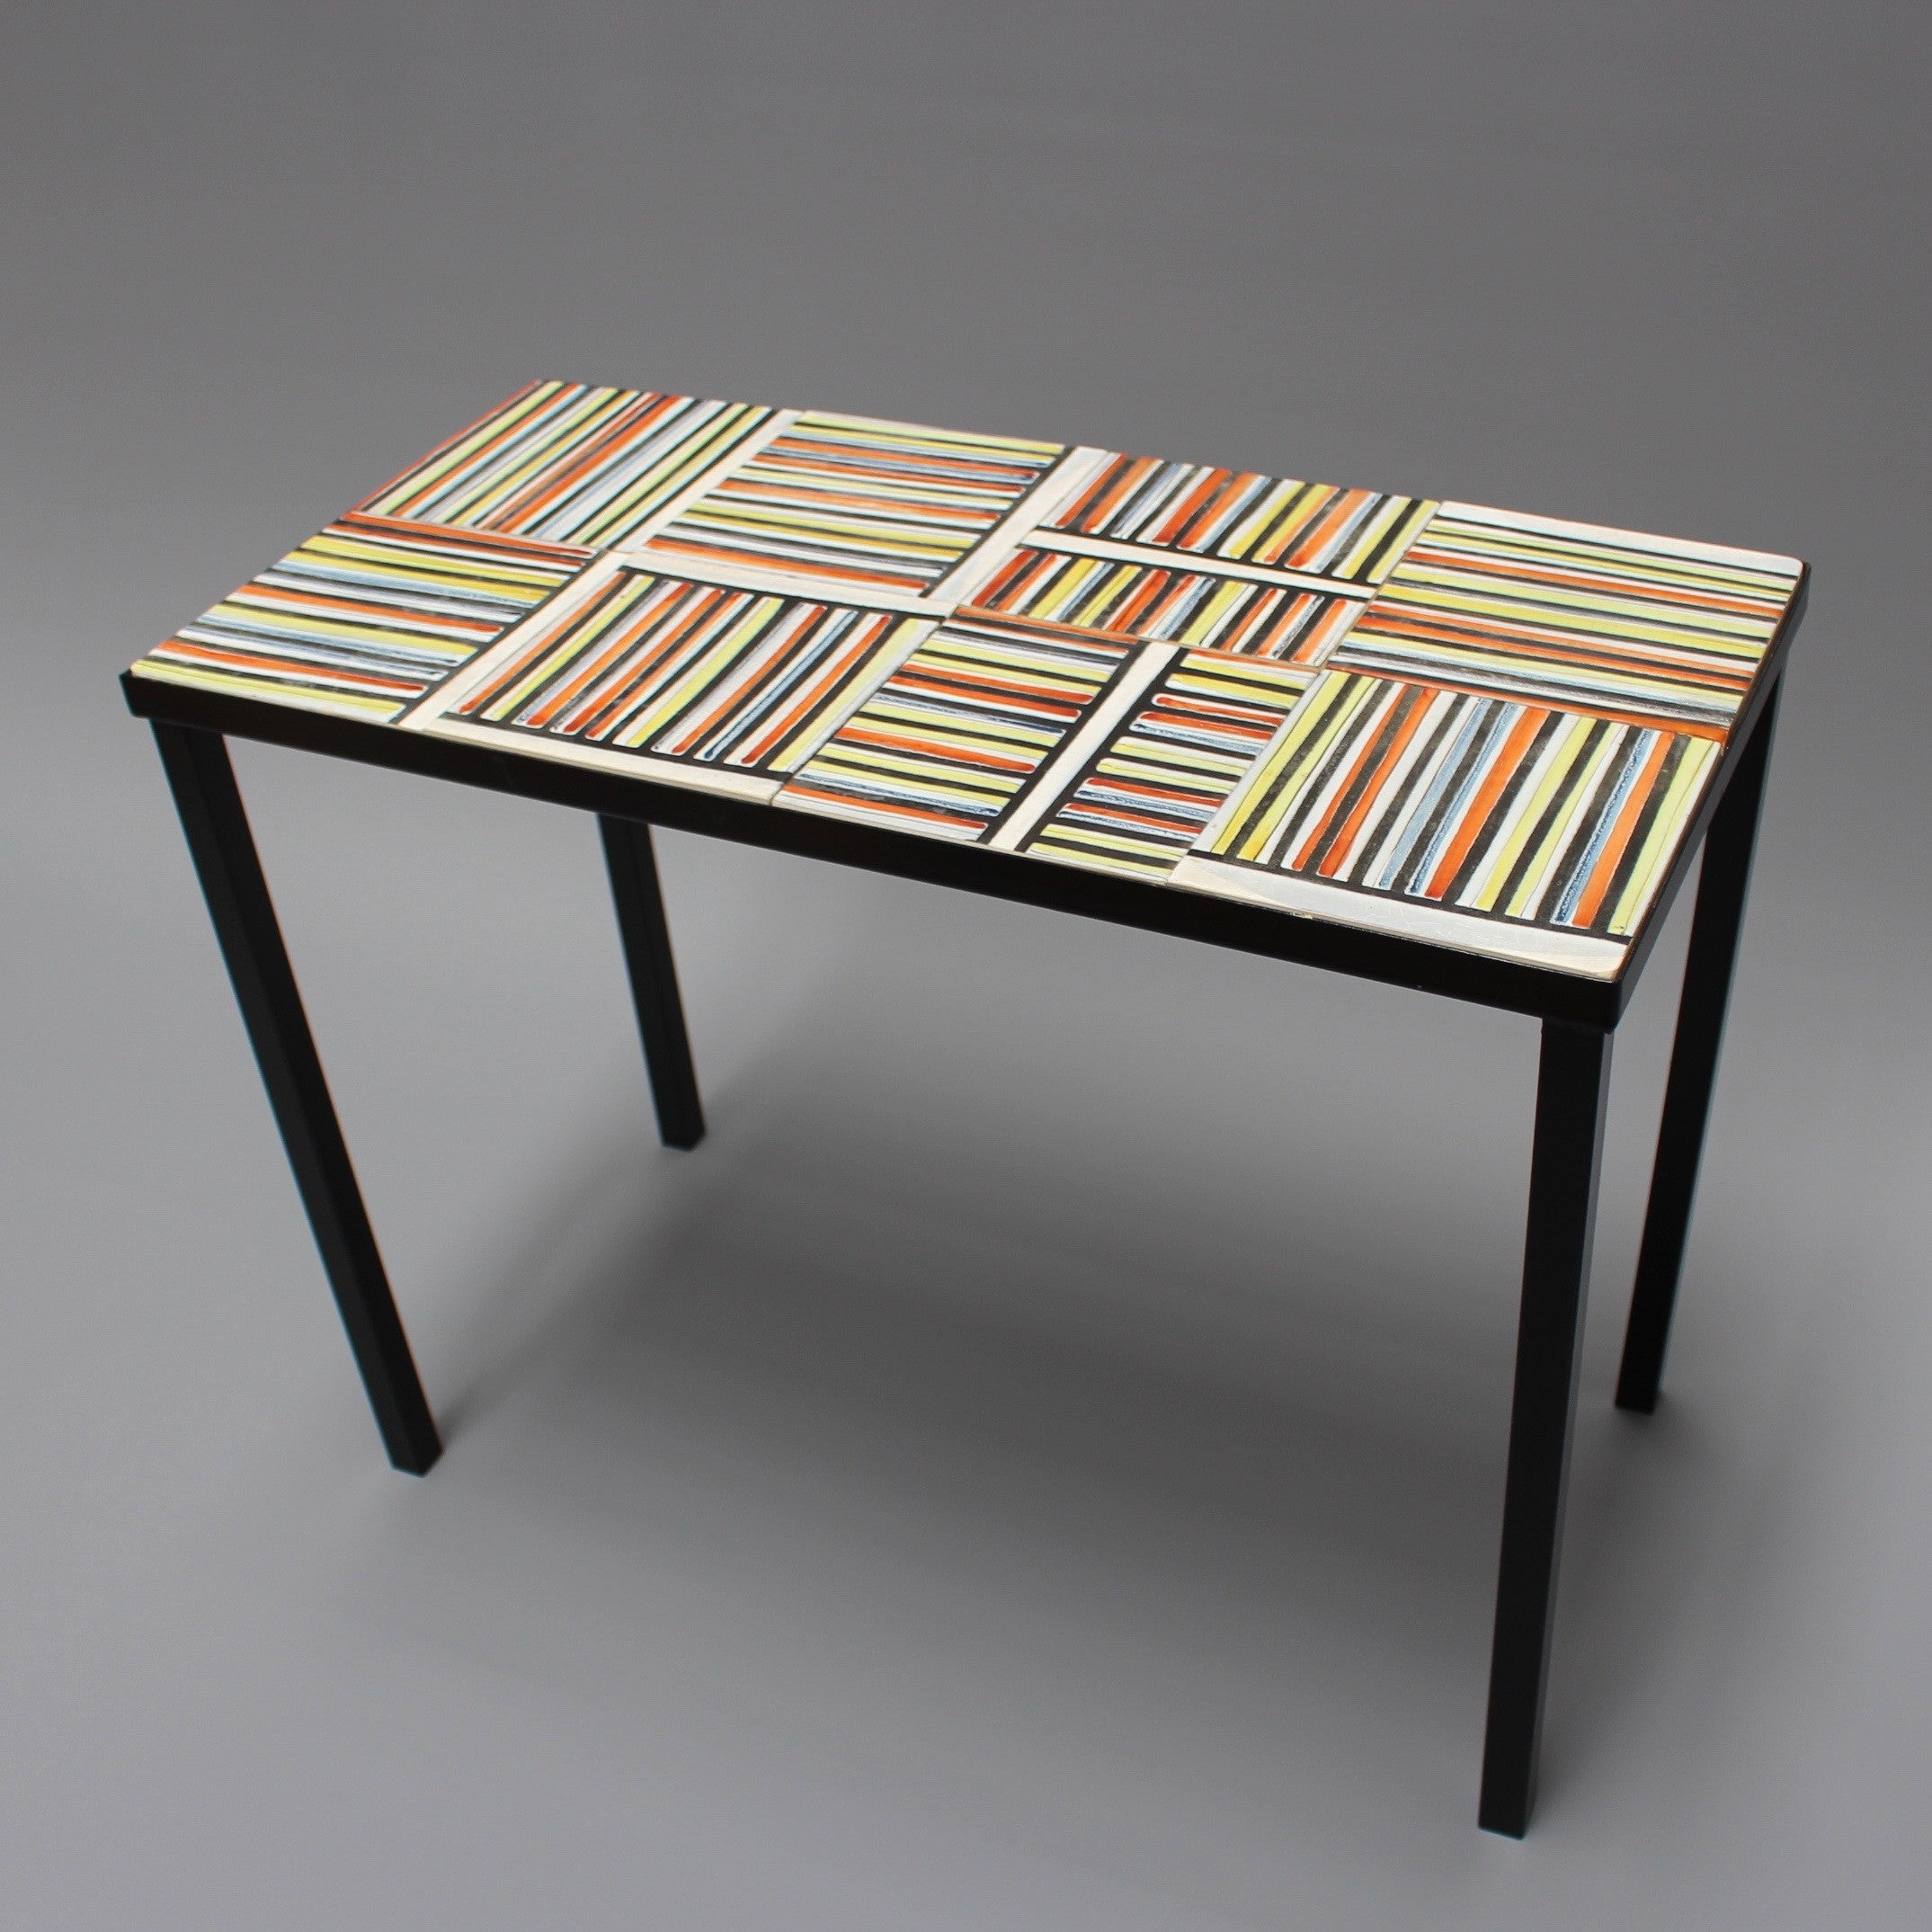 Coffee Table With 'Pyjama' Ceramic Tiles by Roger Capron (c. 1950s)